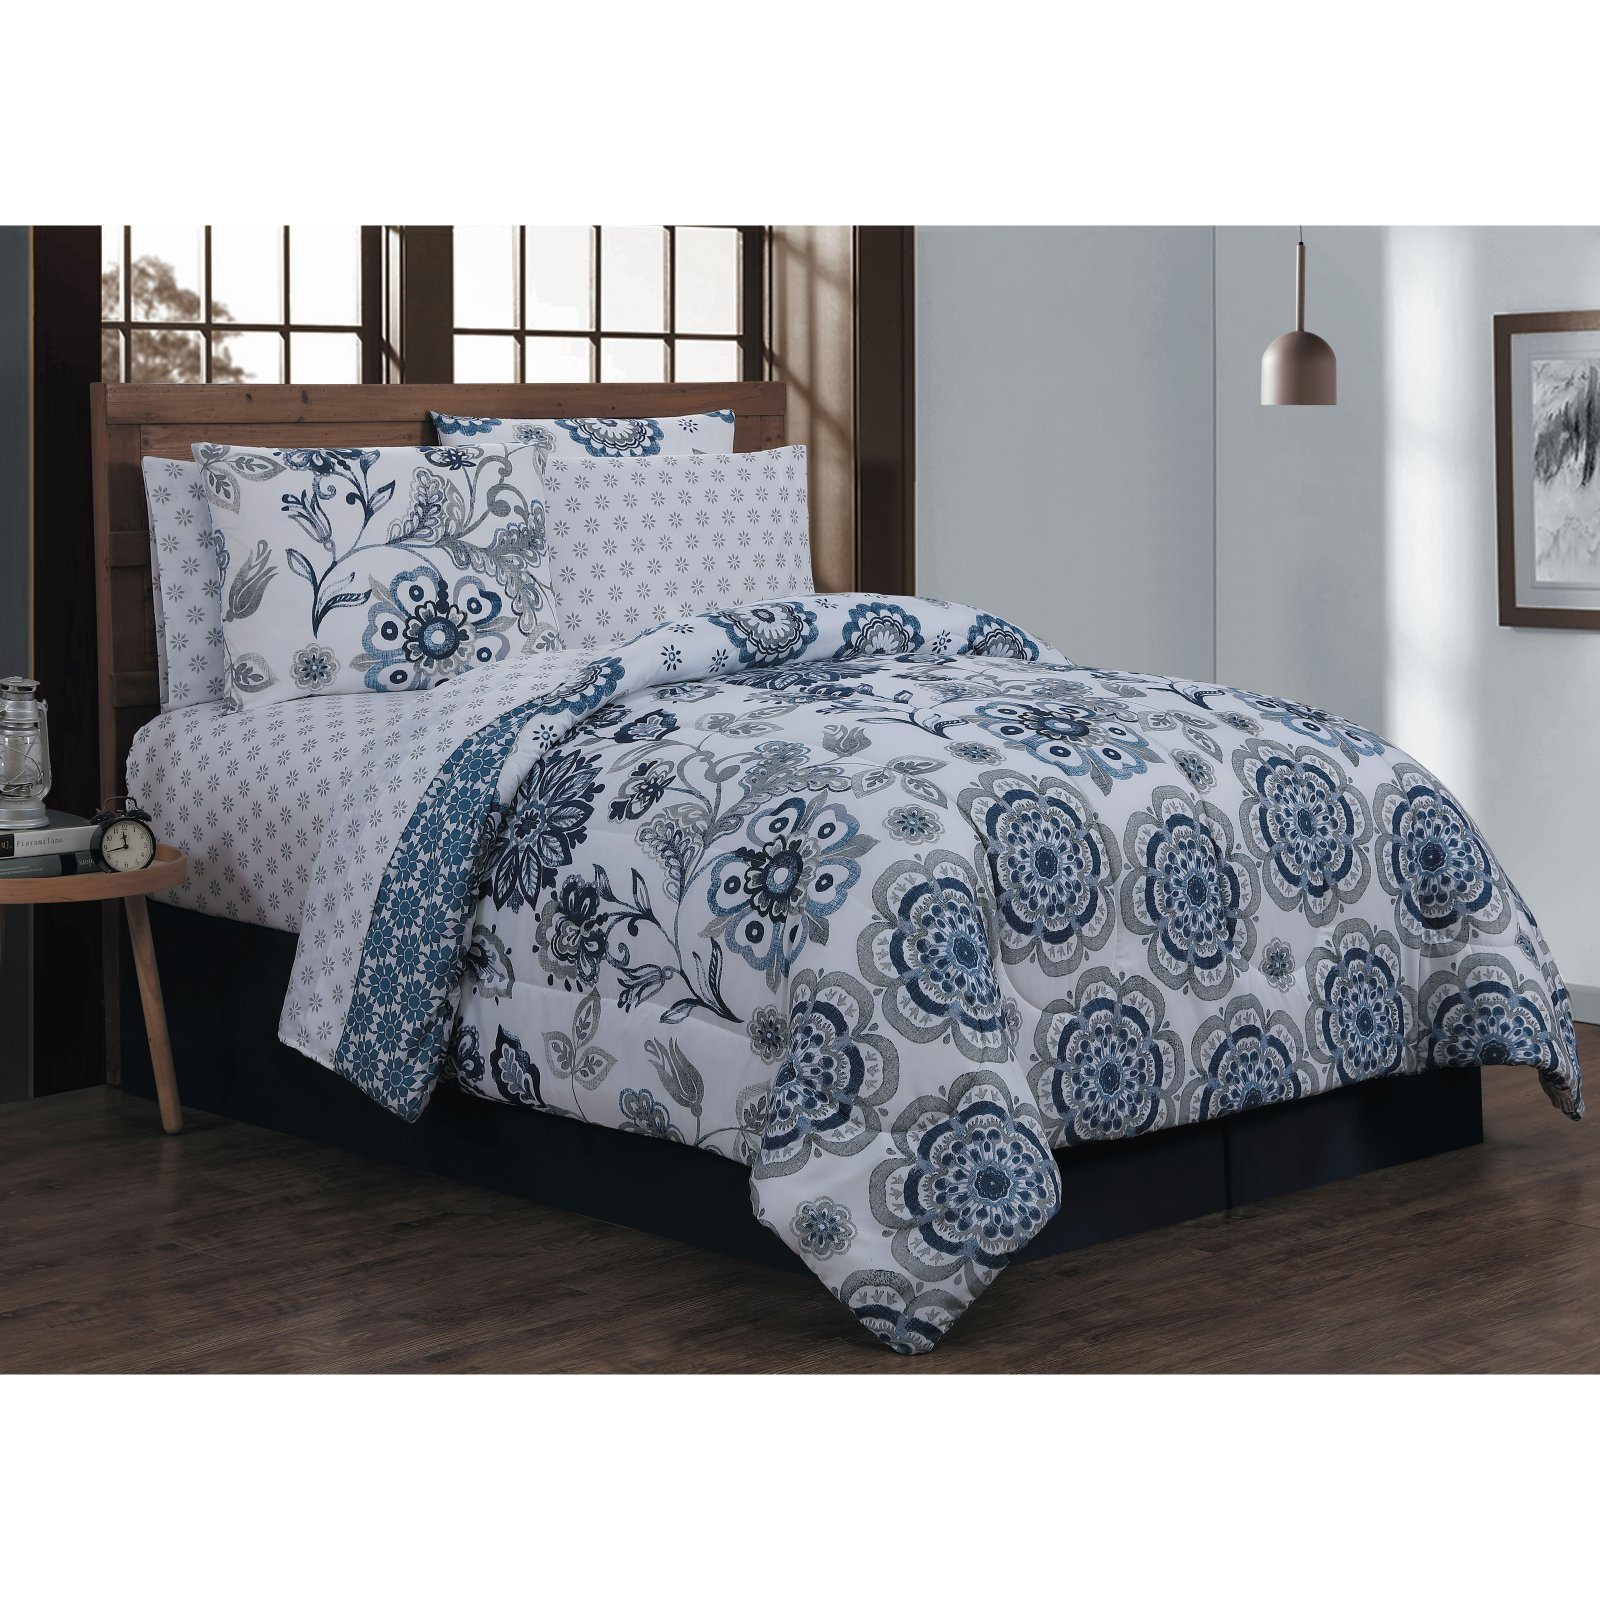 Avondale Manor Cobie 8pc Bed in a Bag Set - King - Blue